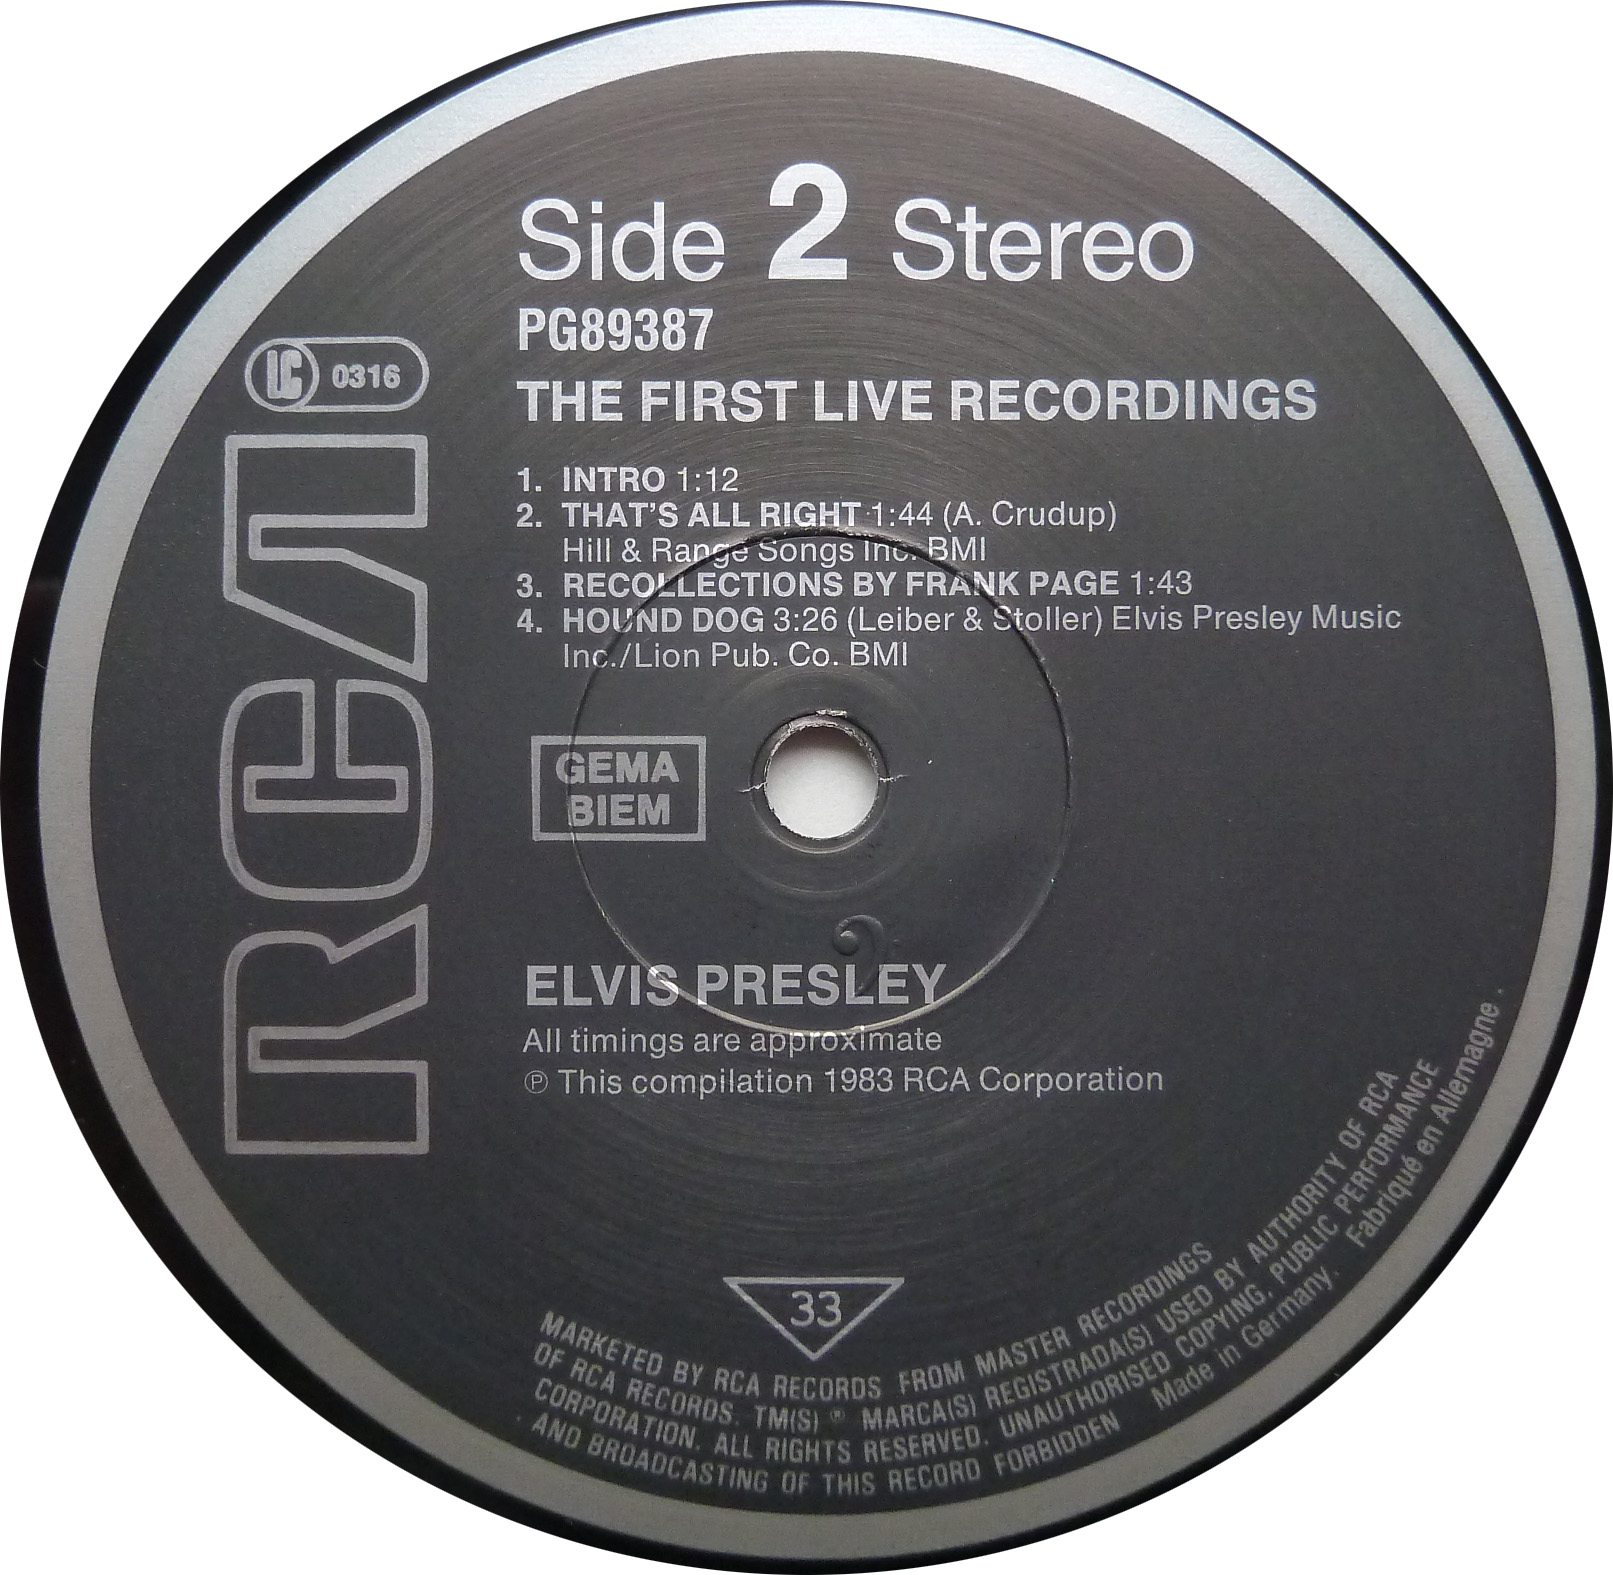 ELVIS: THE FIRST LIVE RECORDINGS Firstliverec05_84seitkzpmz